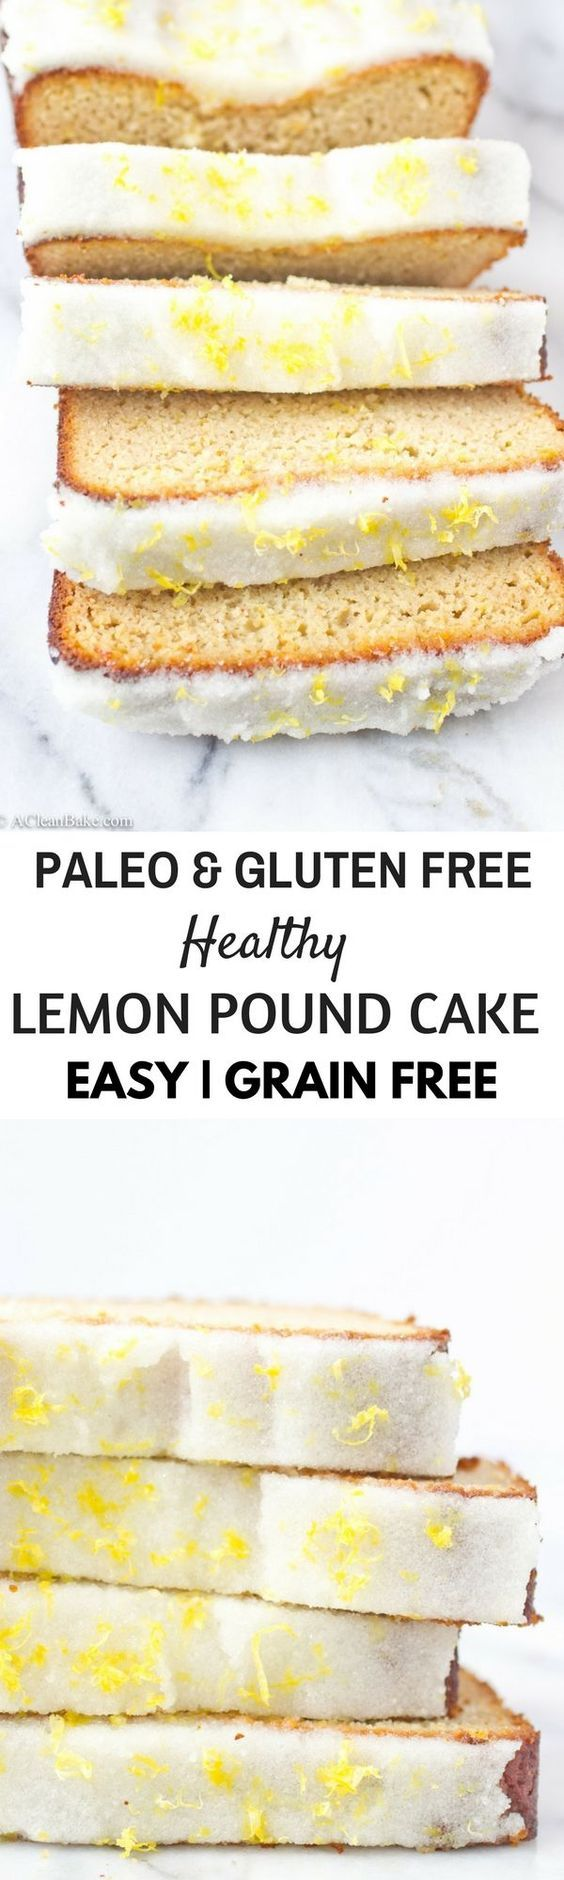 Zesty Paleo lemon pound cake loaf. Best Grain free bread recipes! Paleo french bread. Easy to make sandwich bread. Delicious healthy bread recipes for all your cravings!